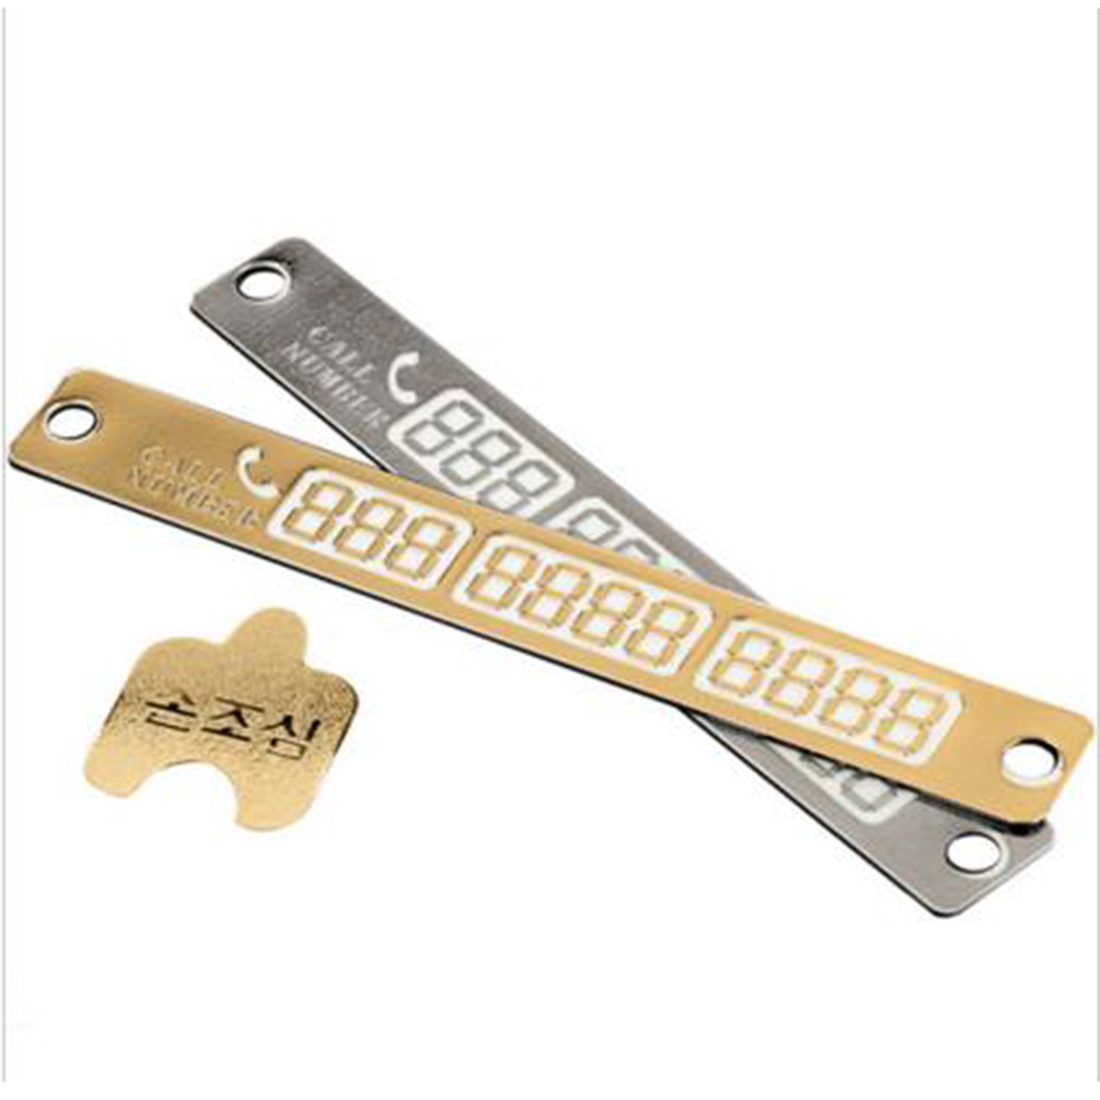 Notification Sucker Plate Car Luminous Temporary Car Parking Card Card Telephone Number Car Styling Phone Number Card